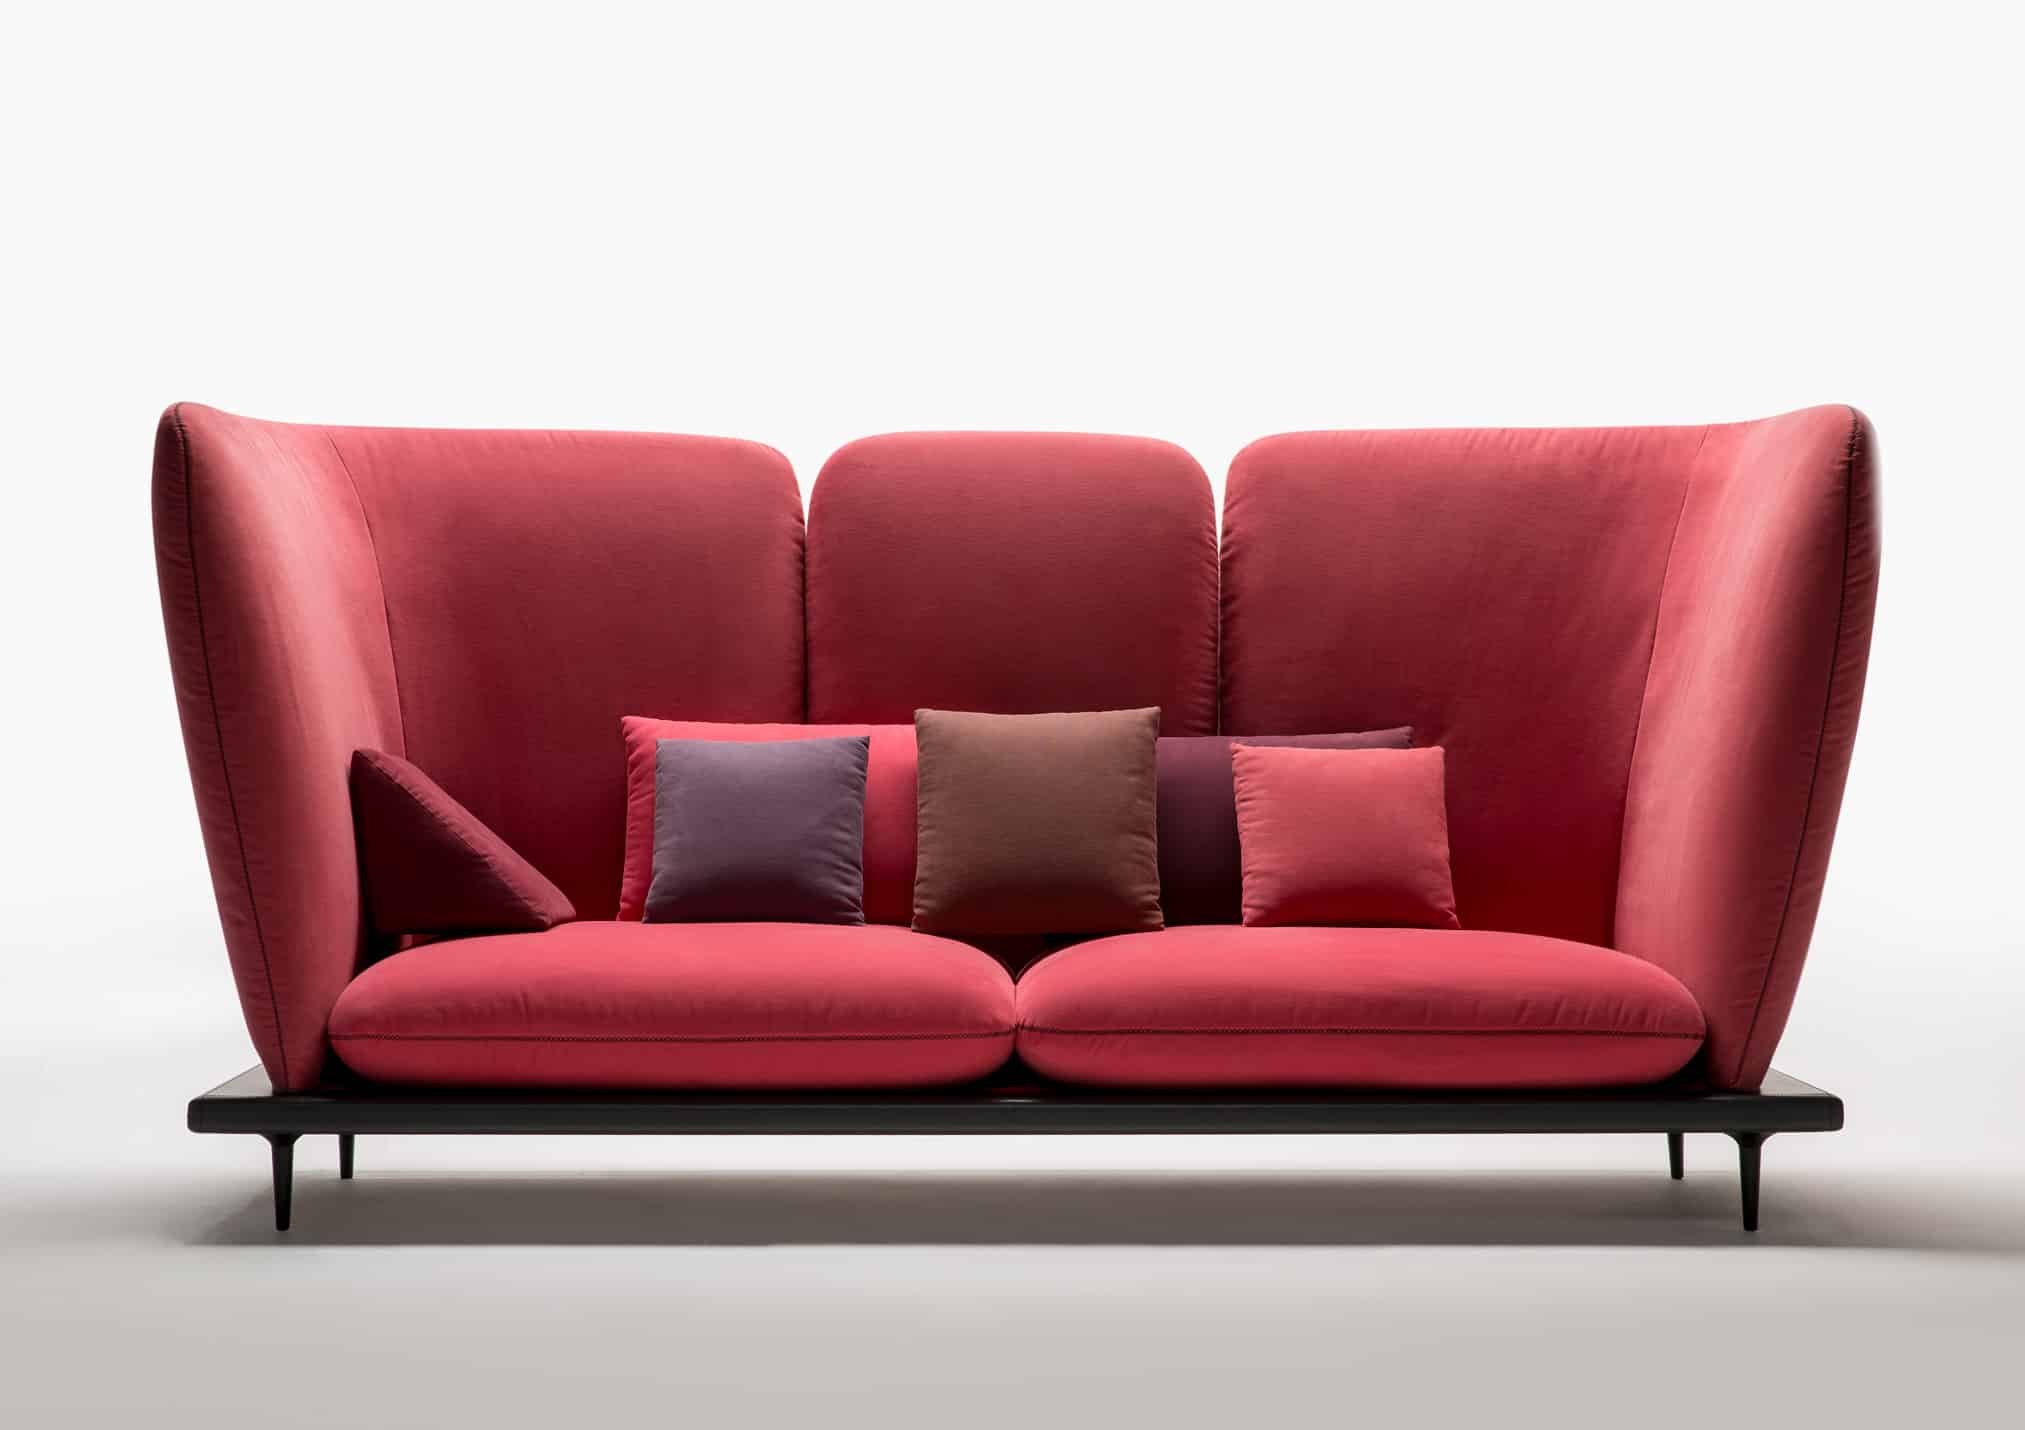 40 elegant modern sofas for cool living rooms Designer loveseats